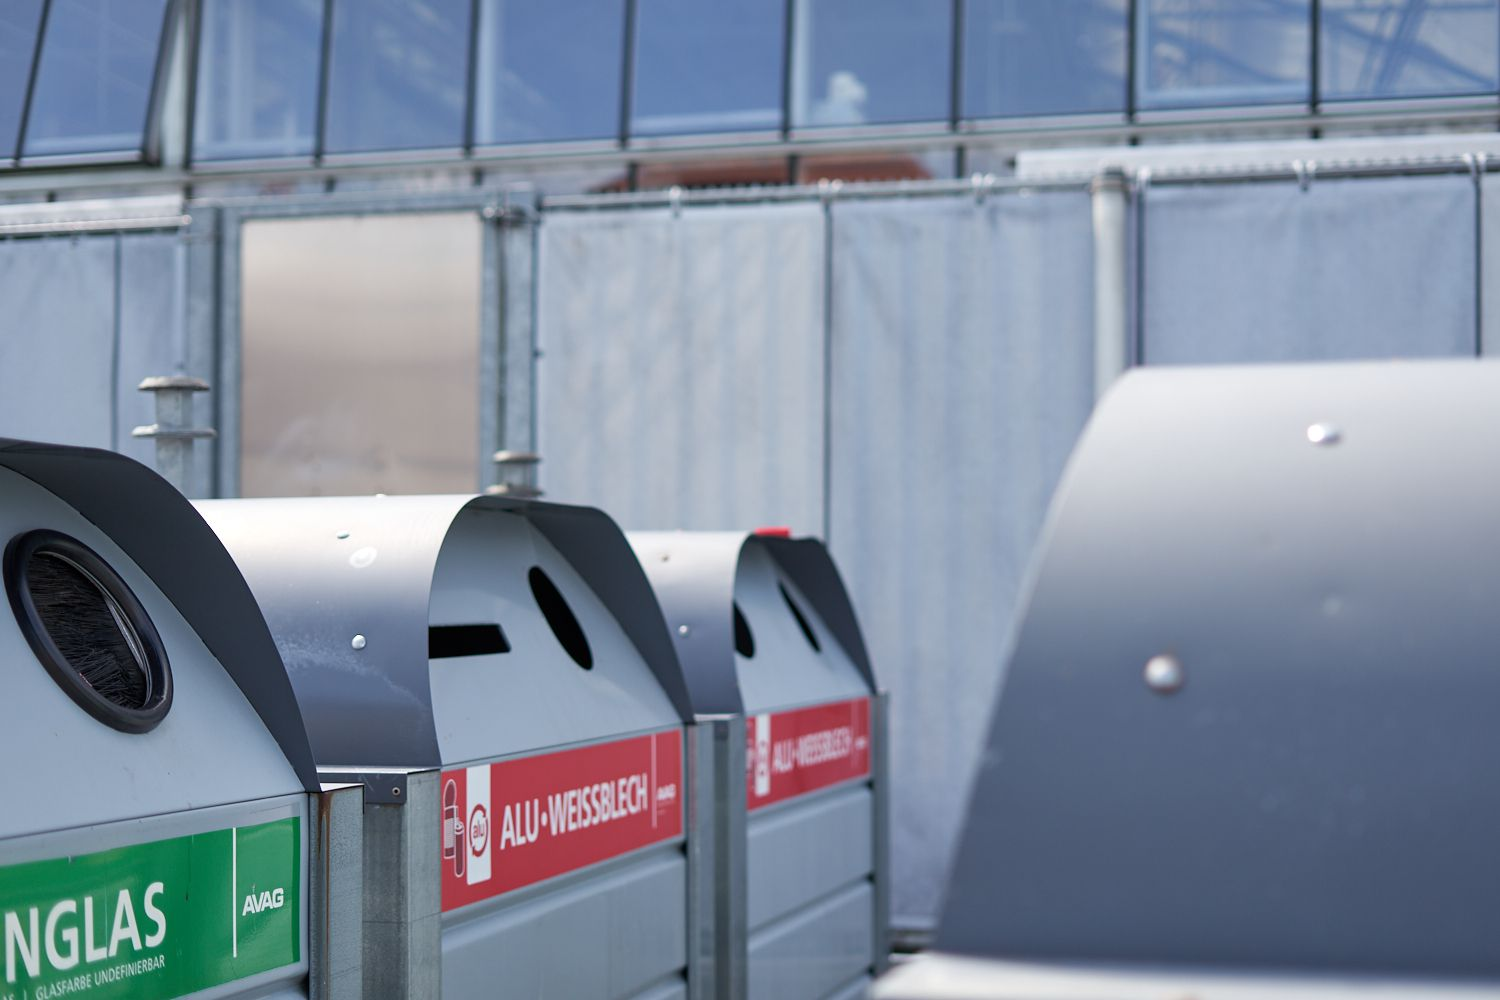 commercial metal recycling bins with labels in Polish